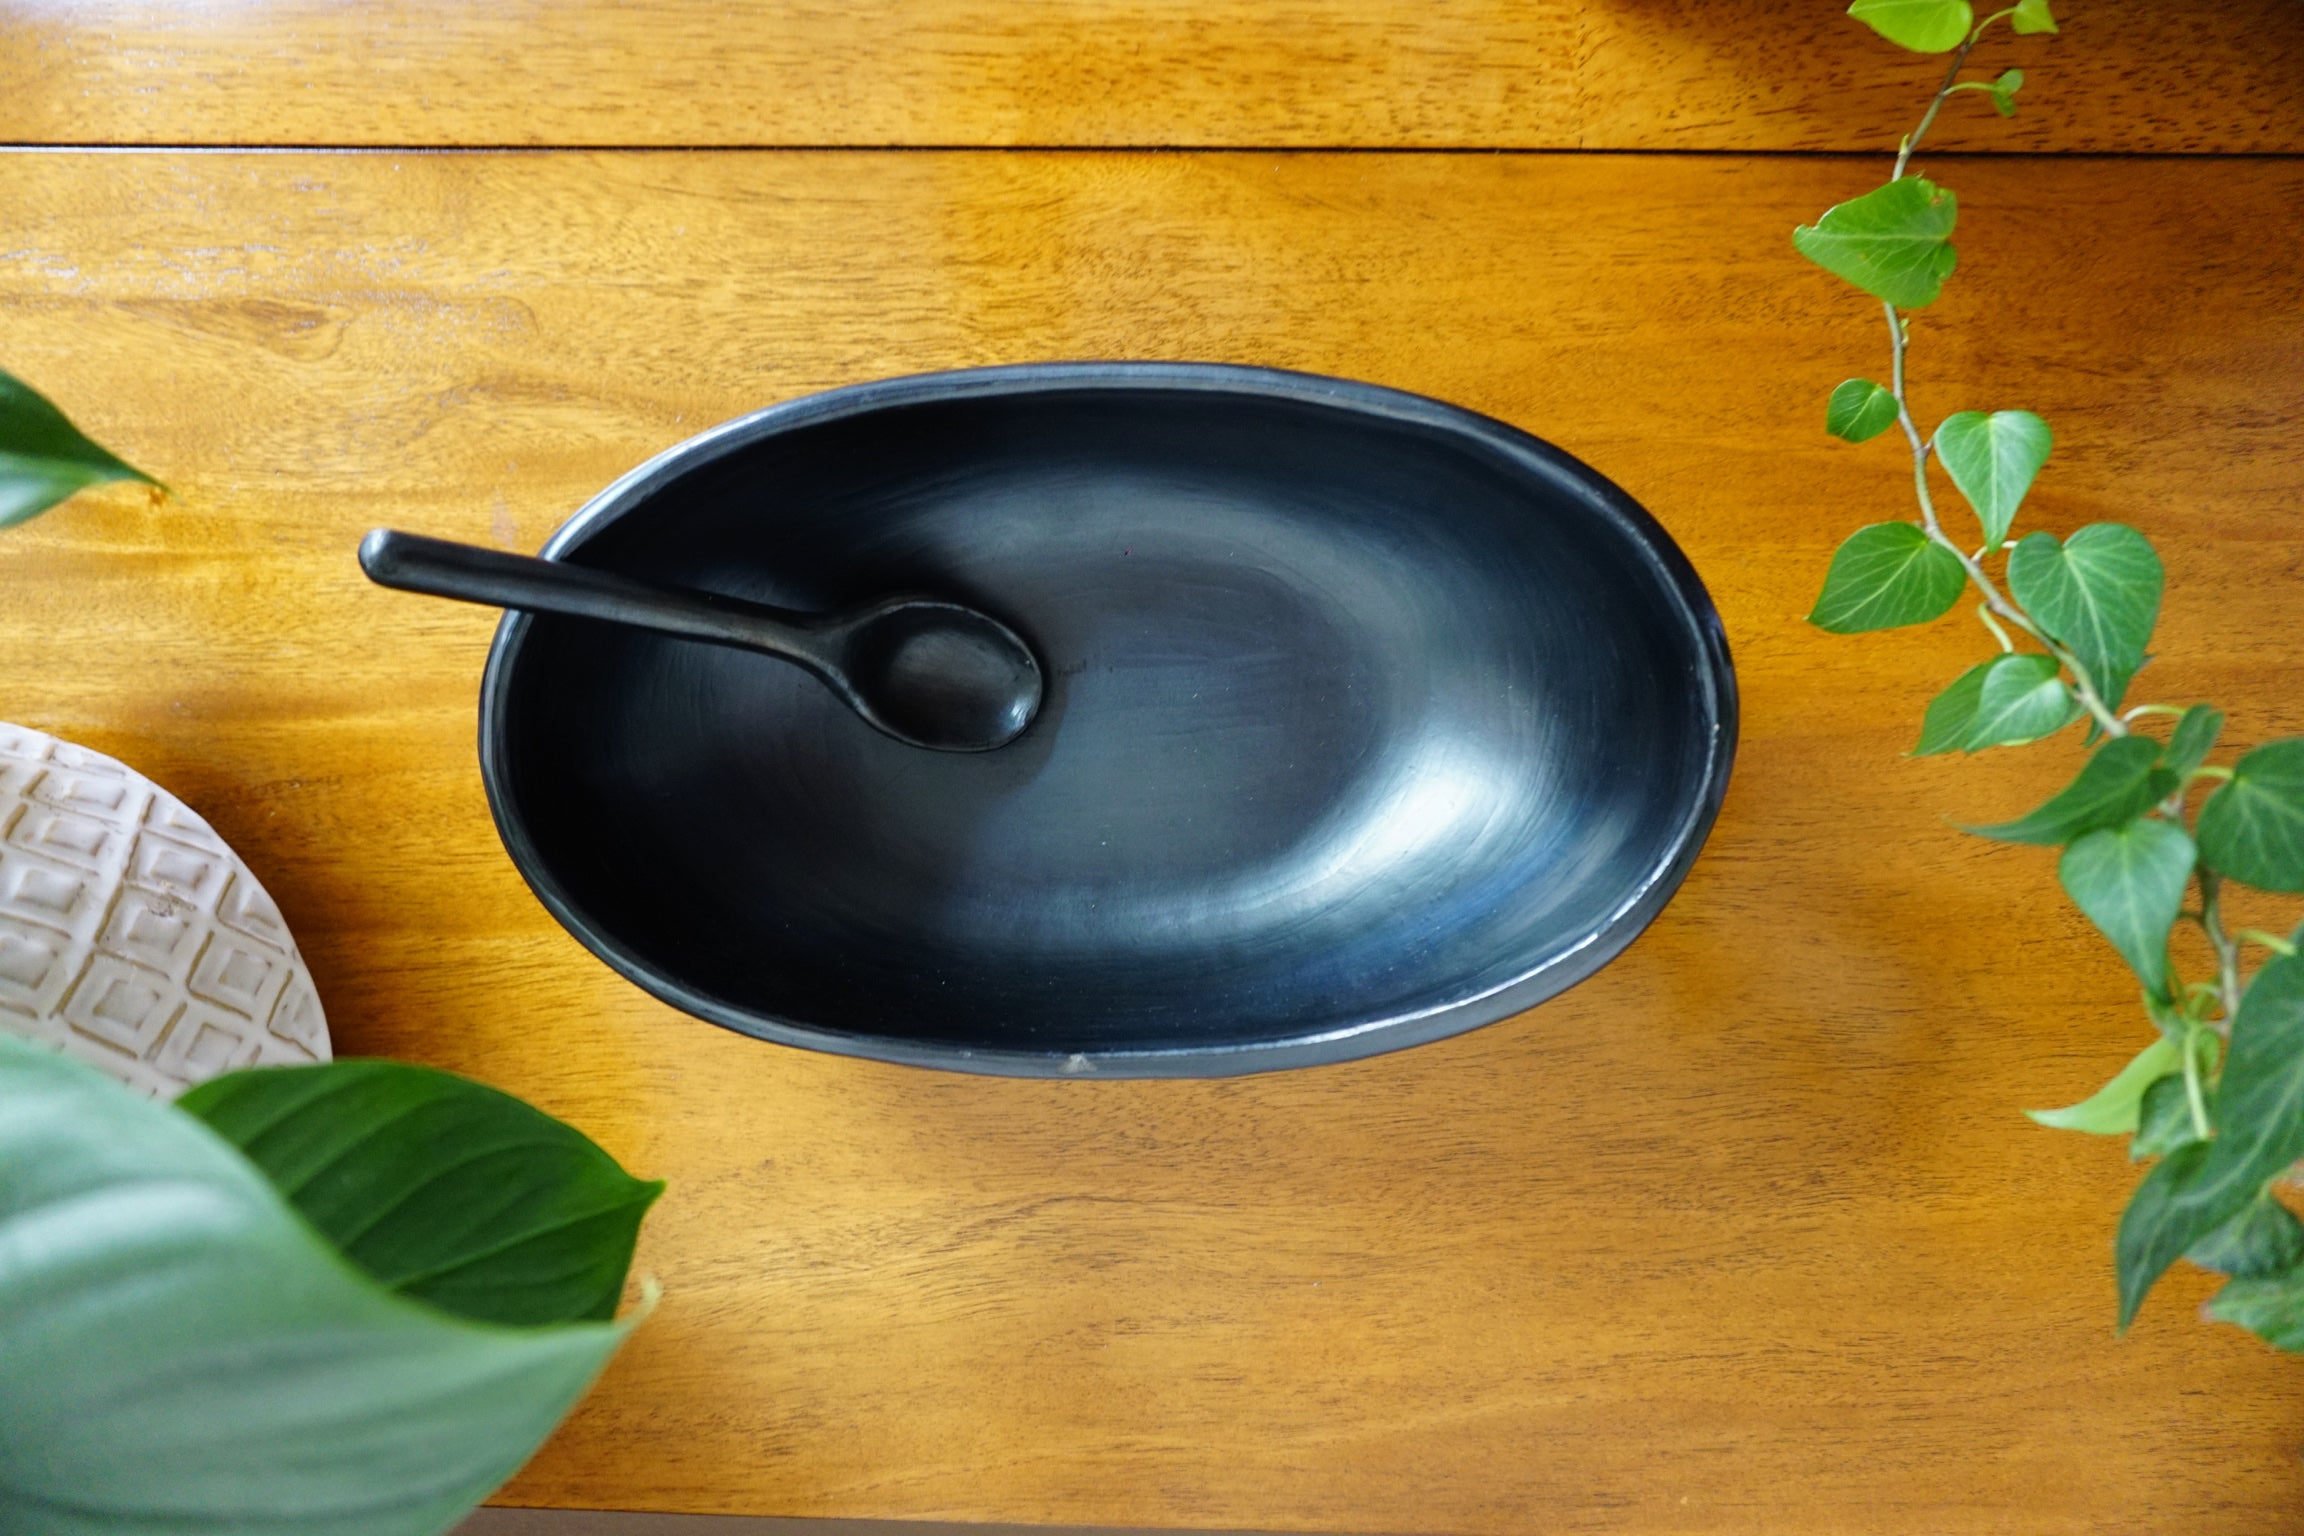 Barco- Serving Dish with Clay Spoon